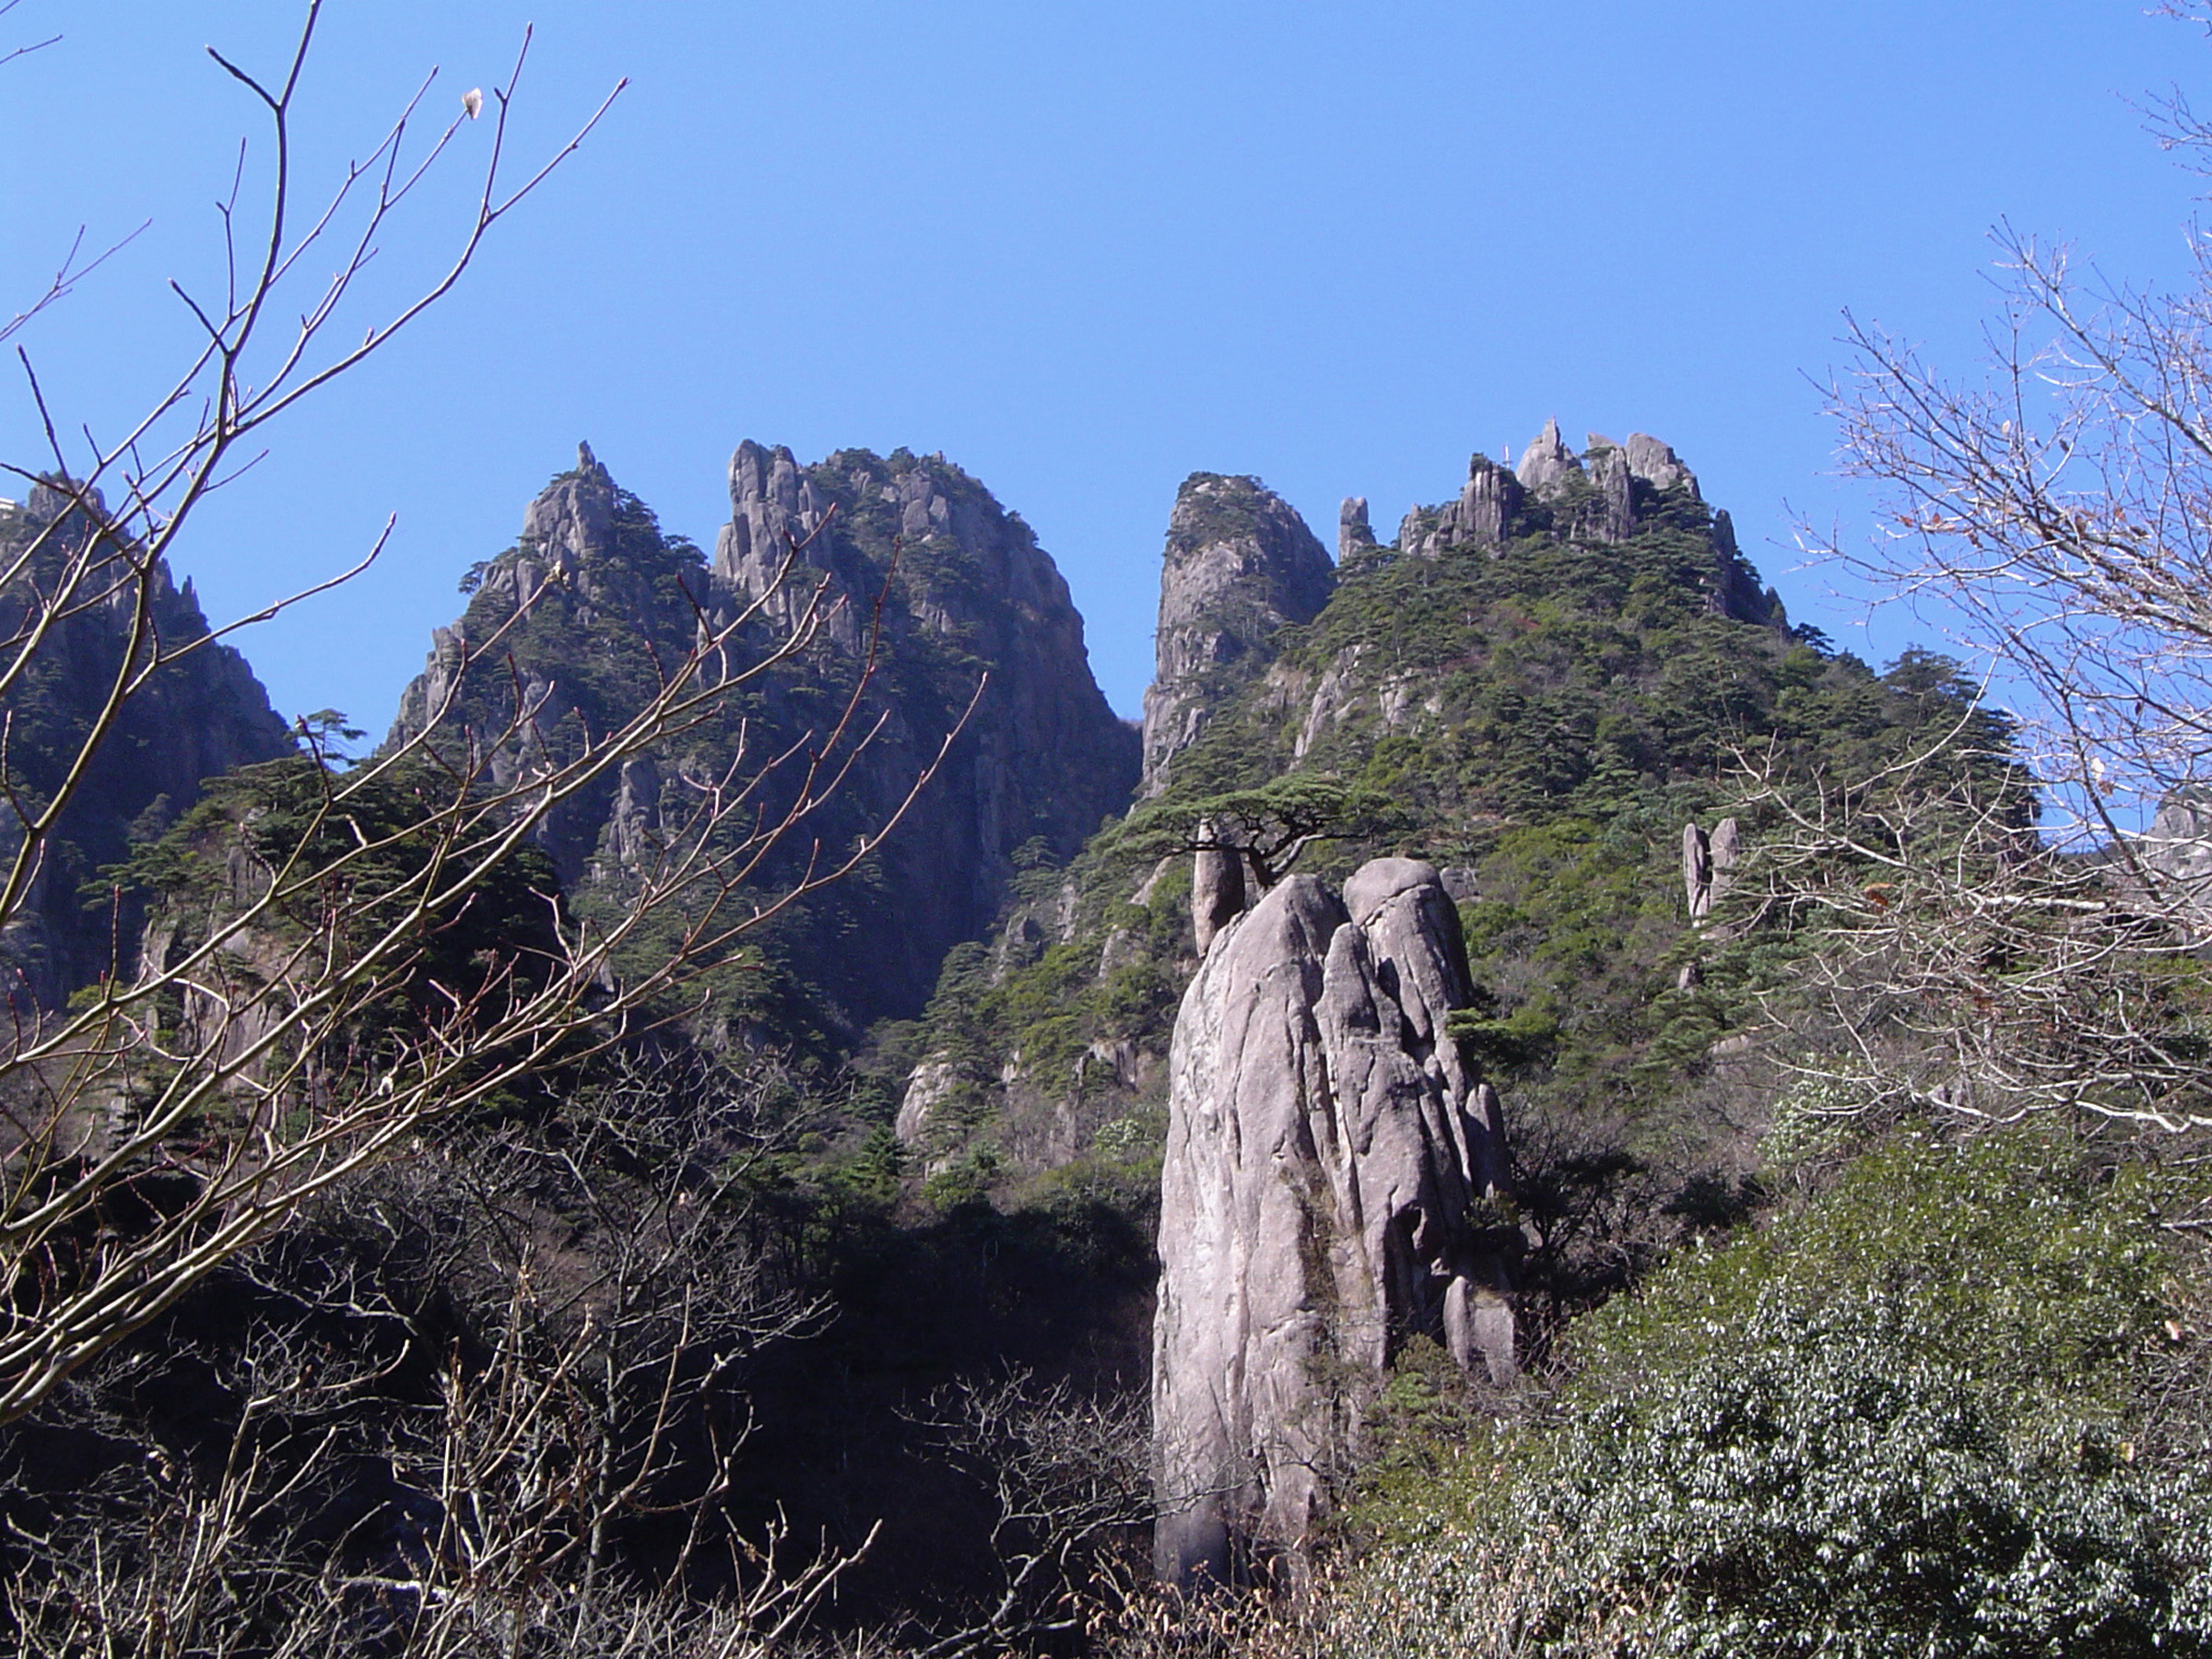 Famous Attraction of the Yellow Mountain Range with Green Plants and Trees in China. Captured with Light Blue Sky Background.